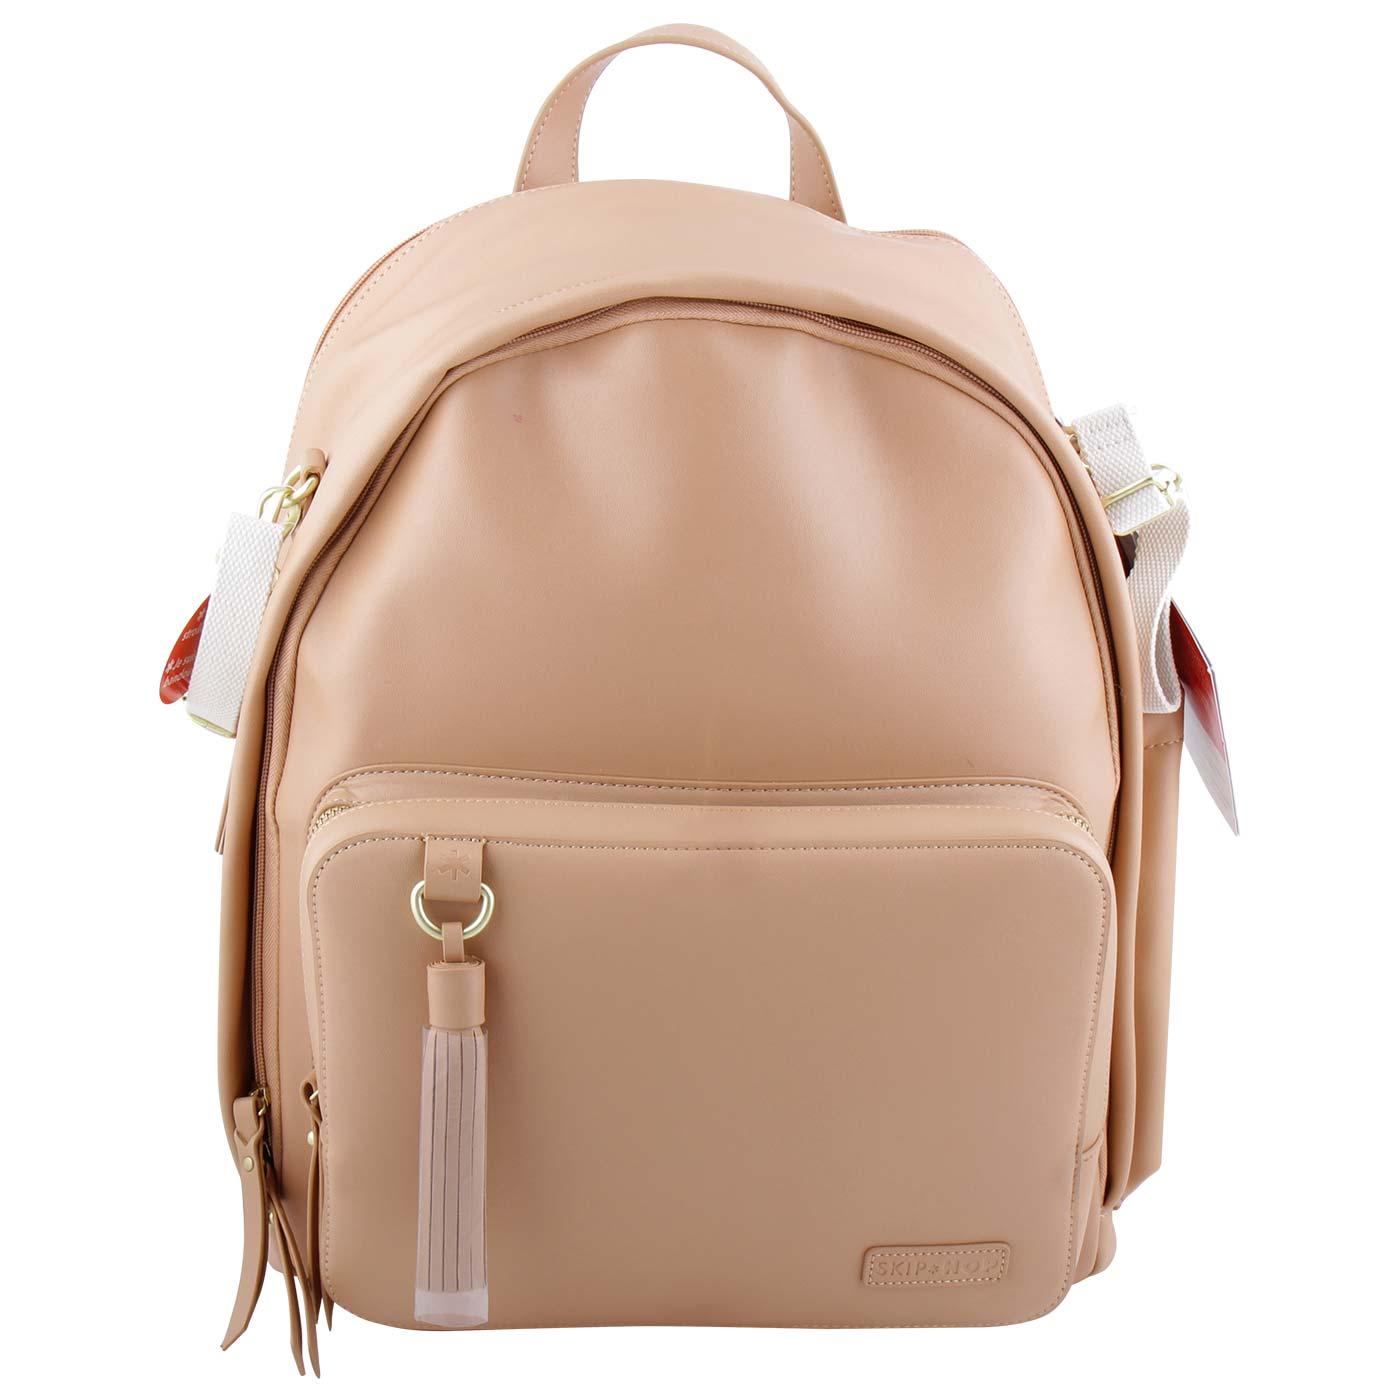 Skiphop Greenwich Simply Chic Backpack Caramel 1